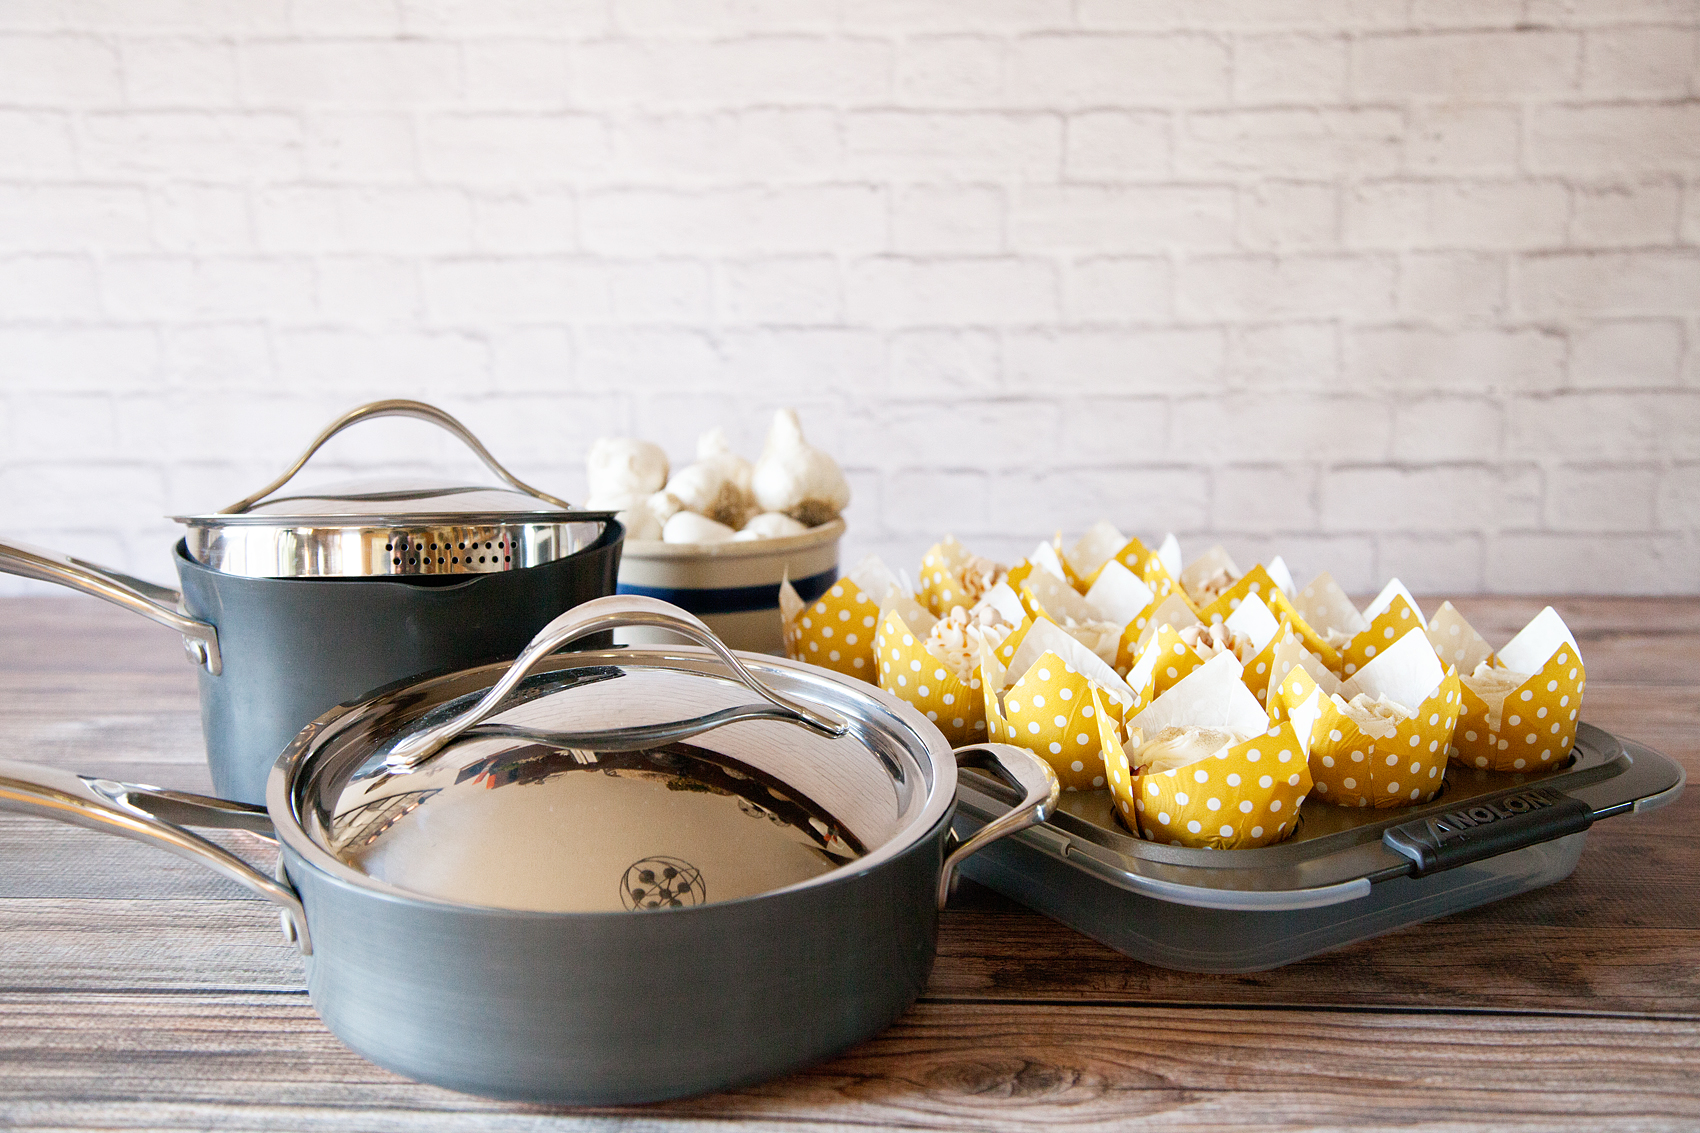 The key to finding Great Cookware